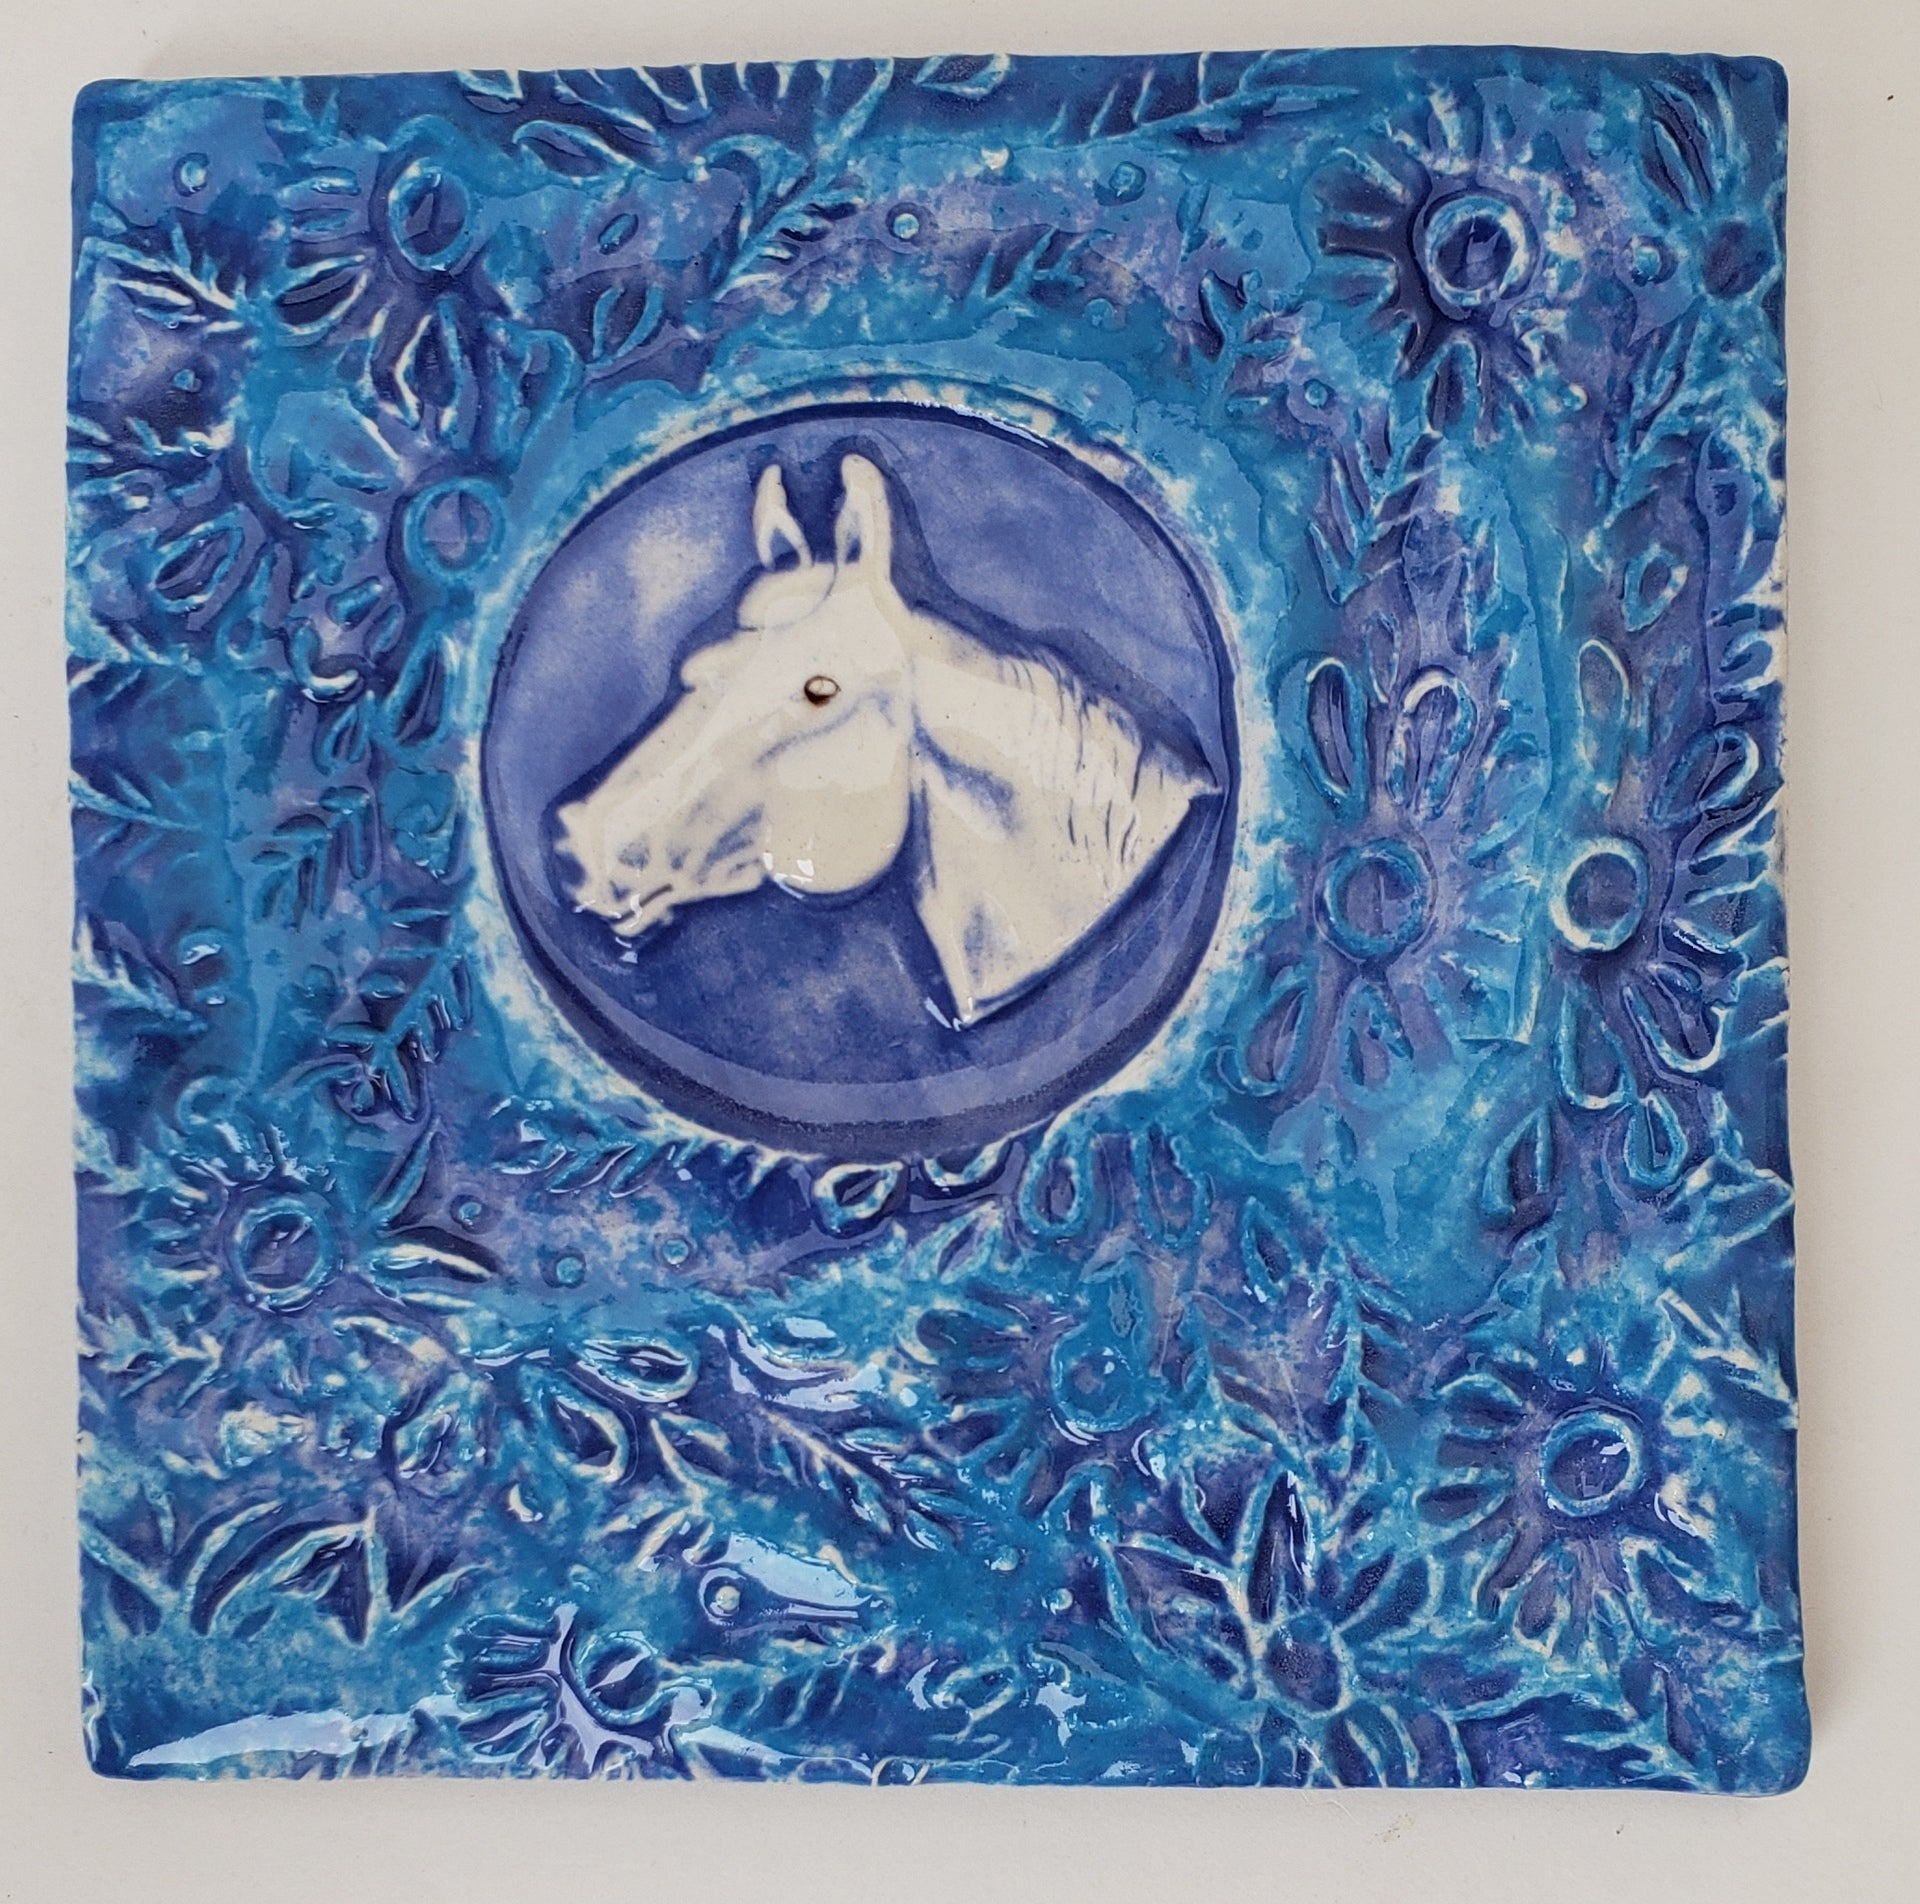 Horse 4x4 Ceramic Tile - Artworks by Karen Fincannon